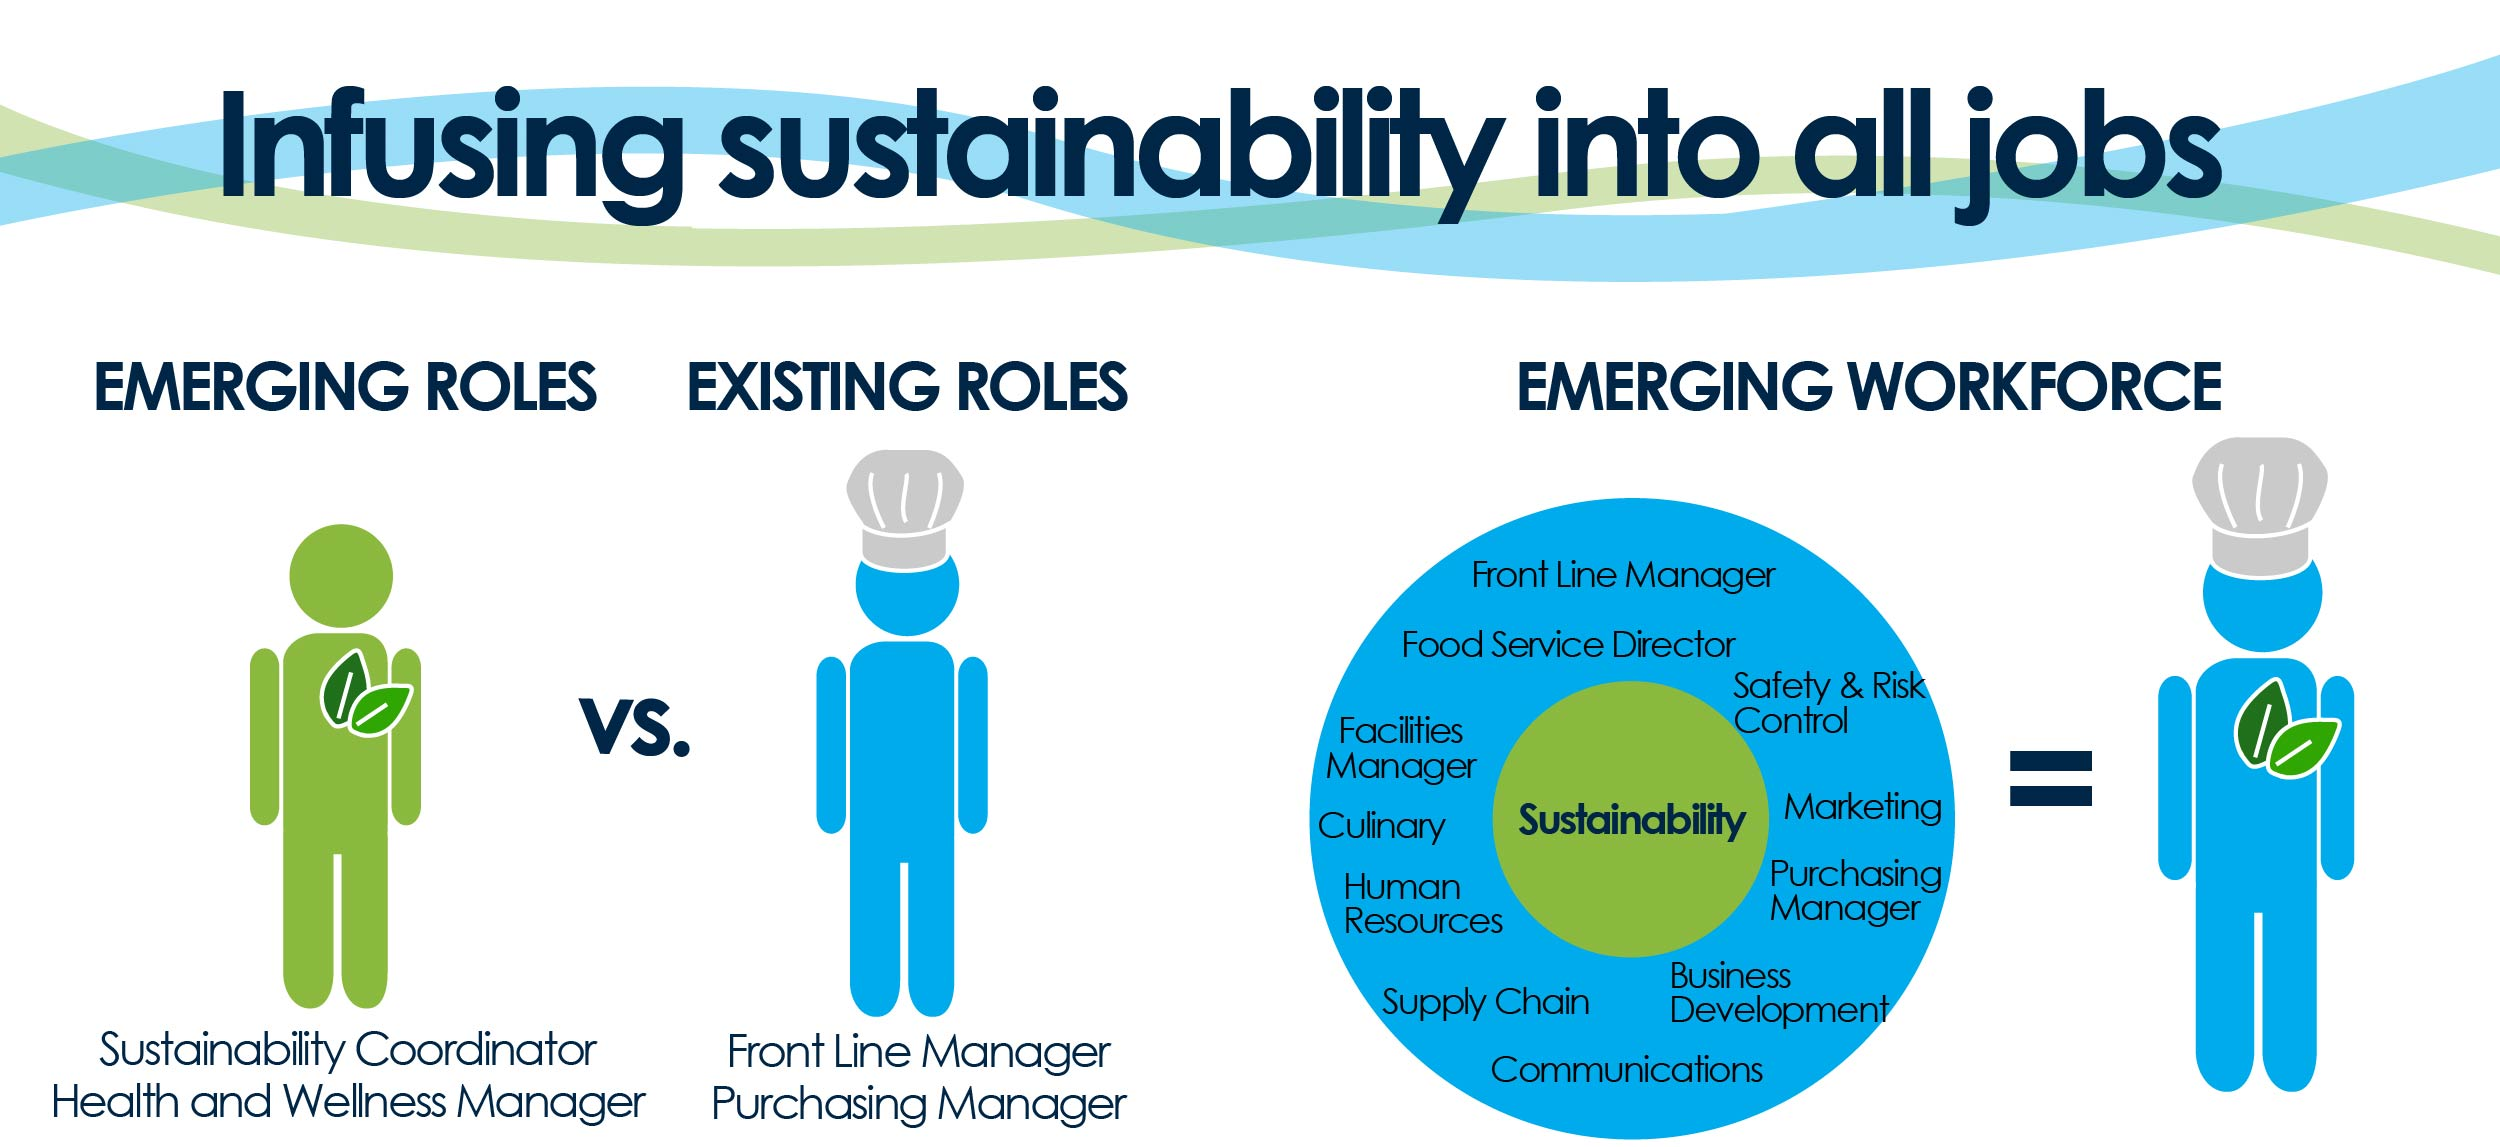 Sustainability jobs